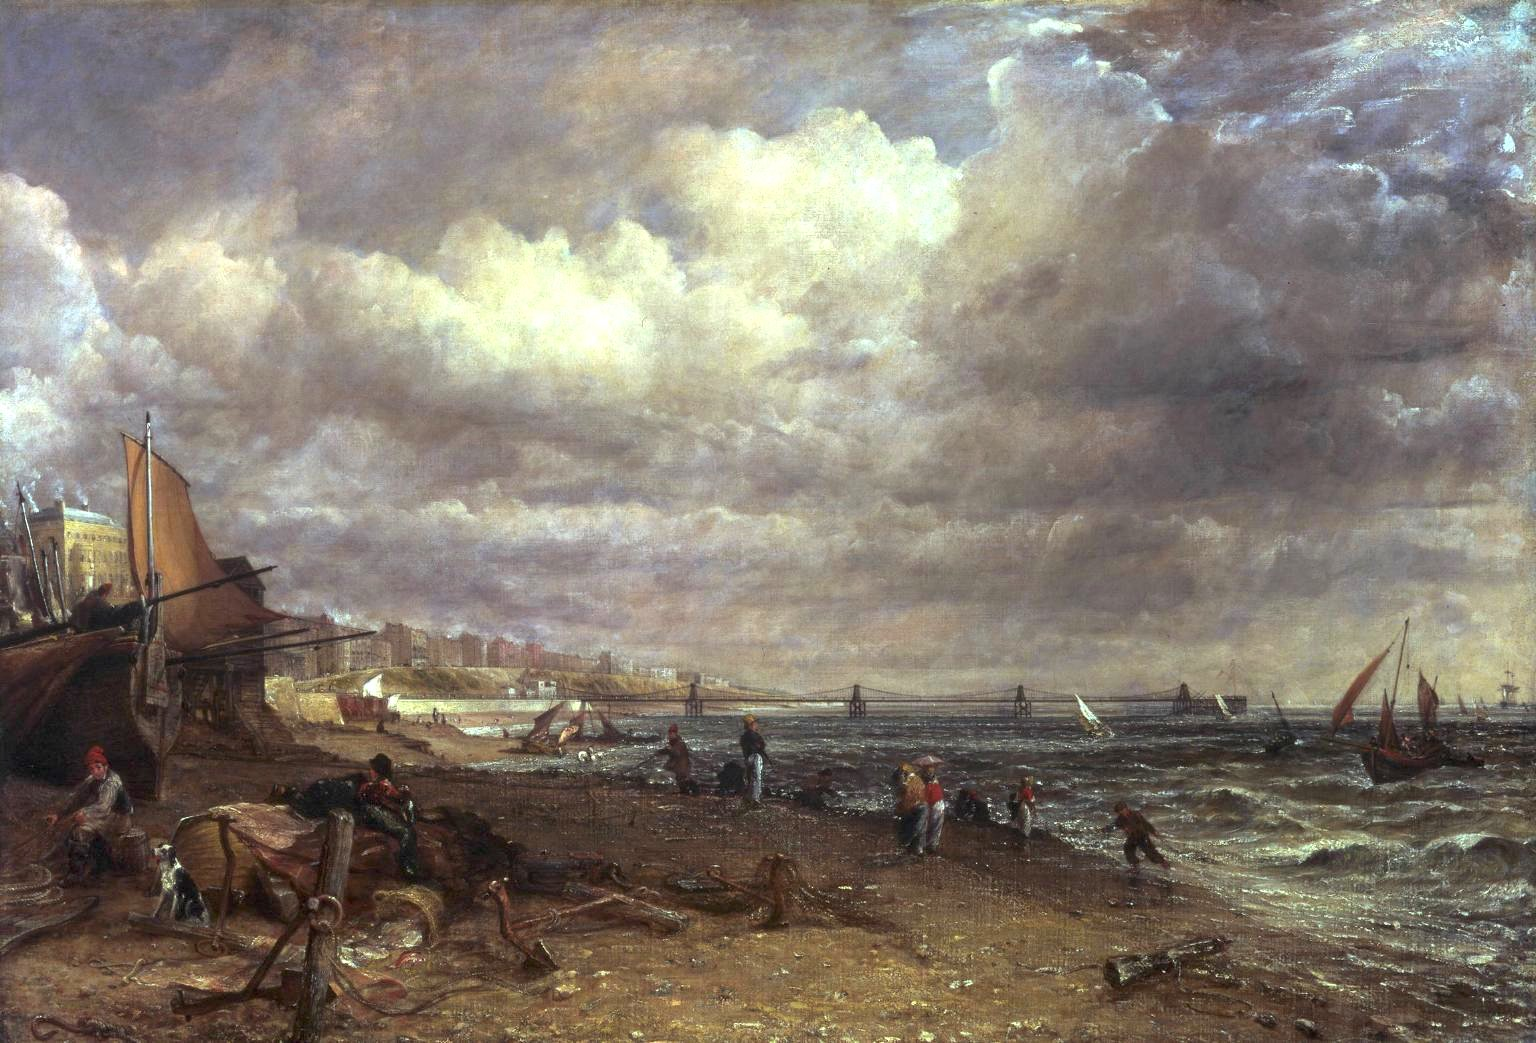 Chain Pier Brighton by John Constable 1826-27 Oil on Canvas (@Tate) https://t.co/ynDmfzhKBj